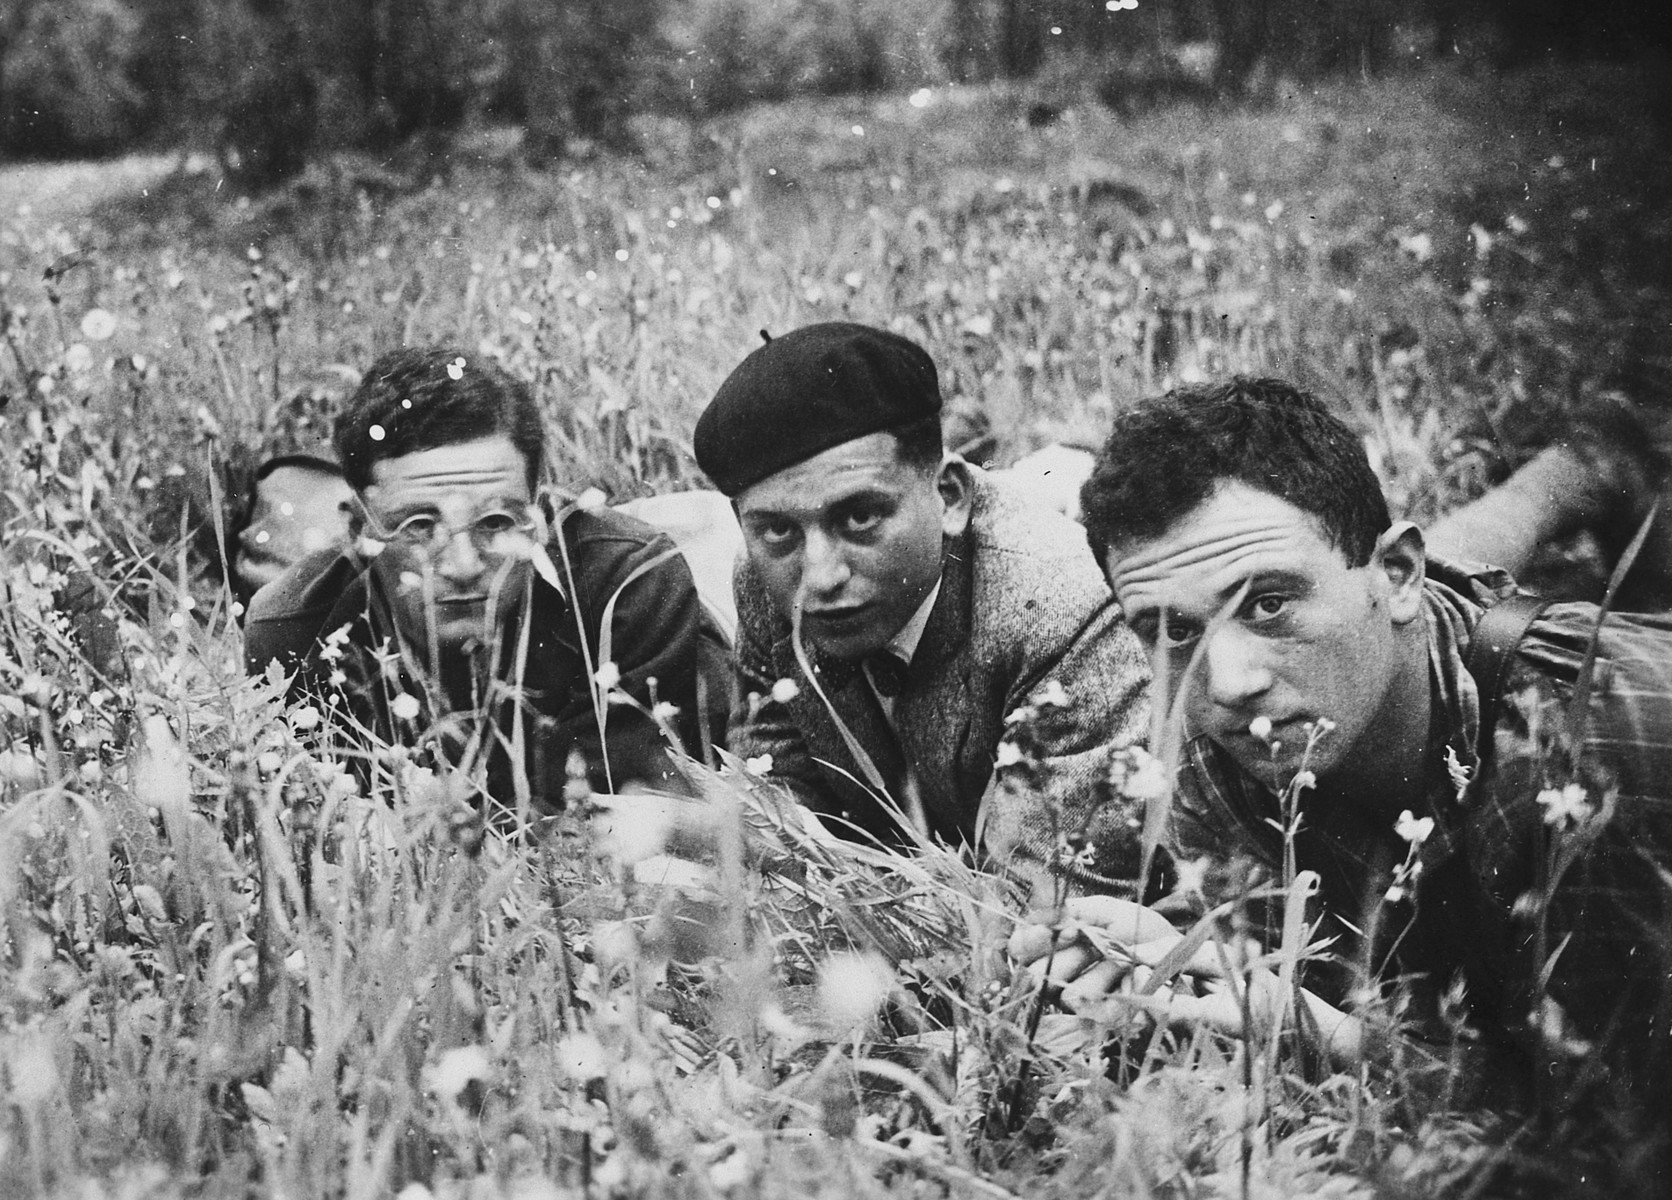 Three German-Jewish young men pose together in a grassy field of wild flowers.